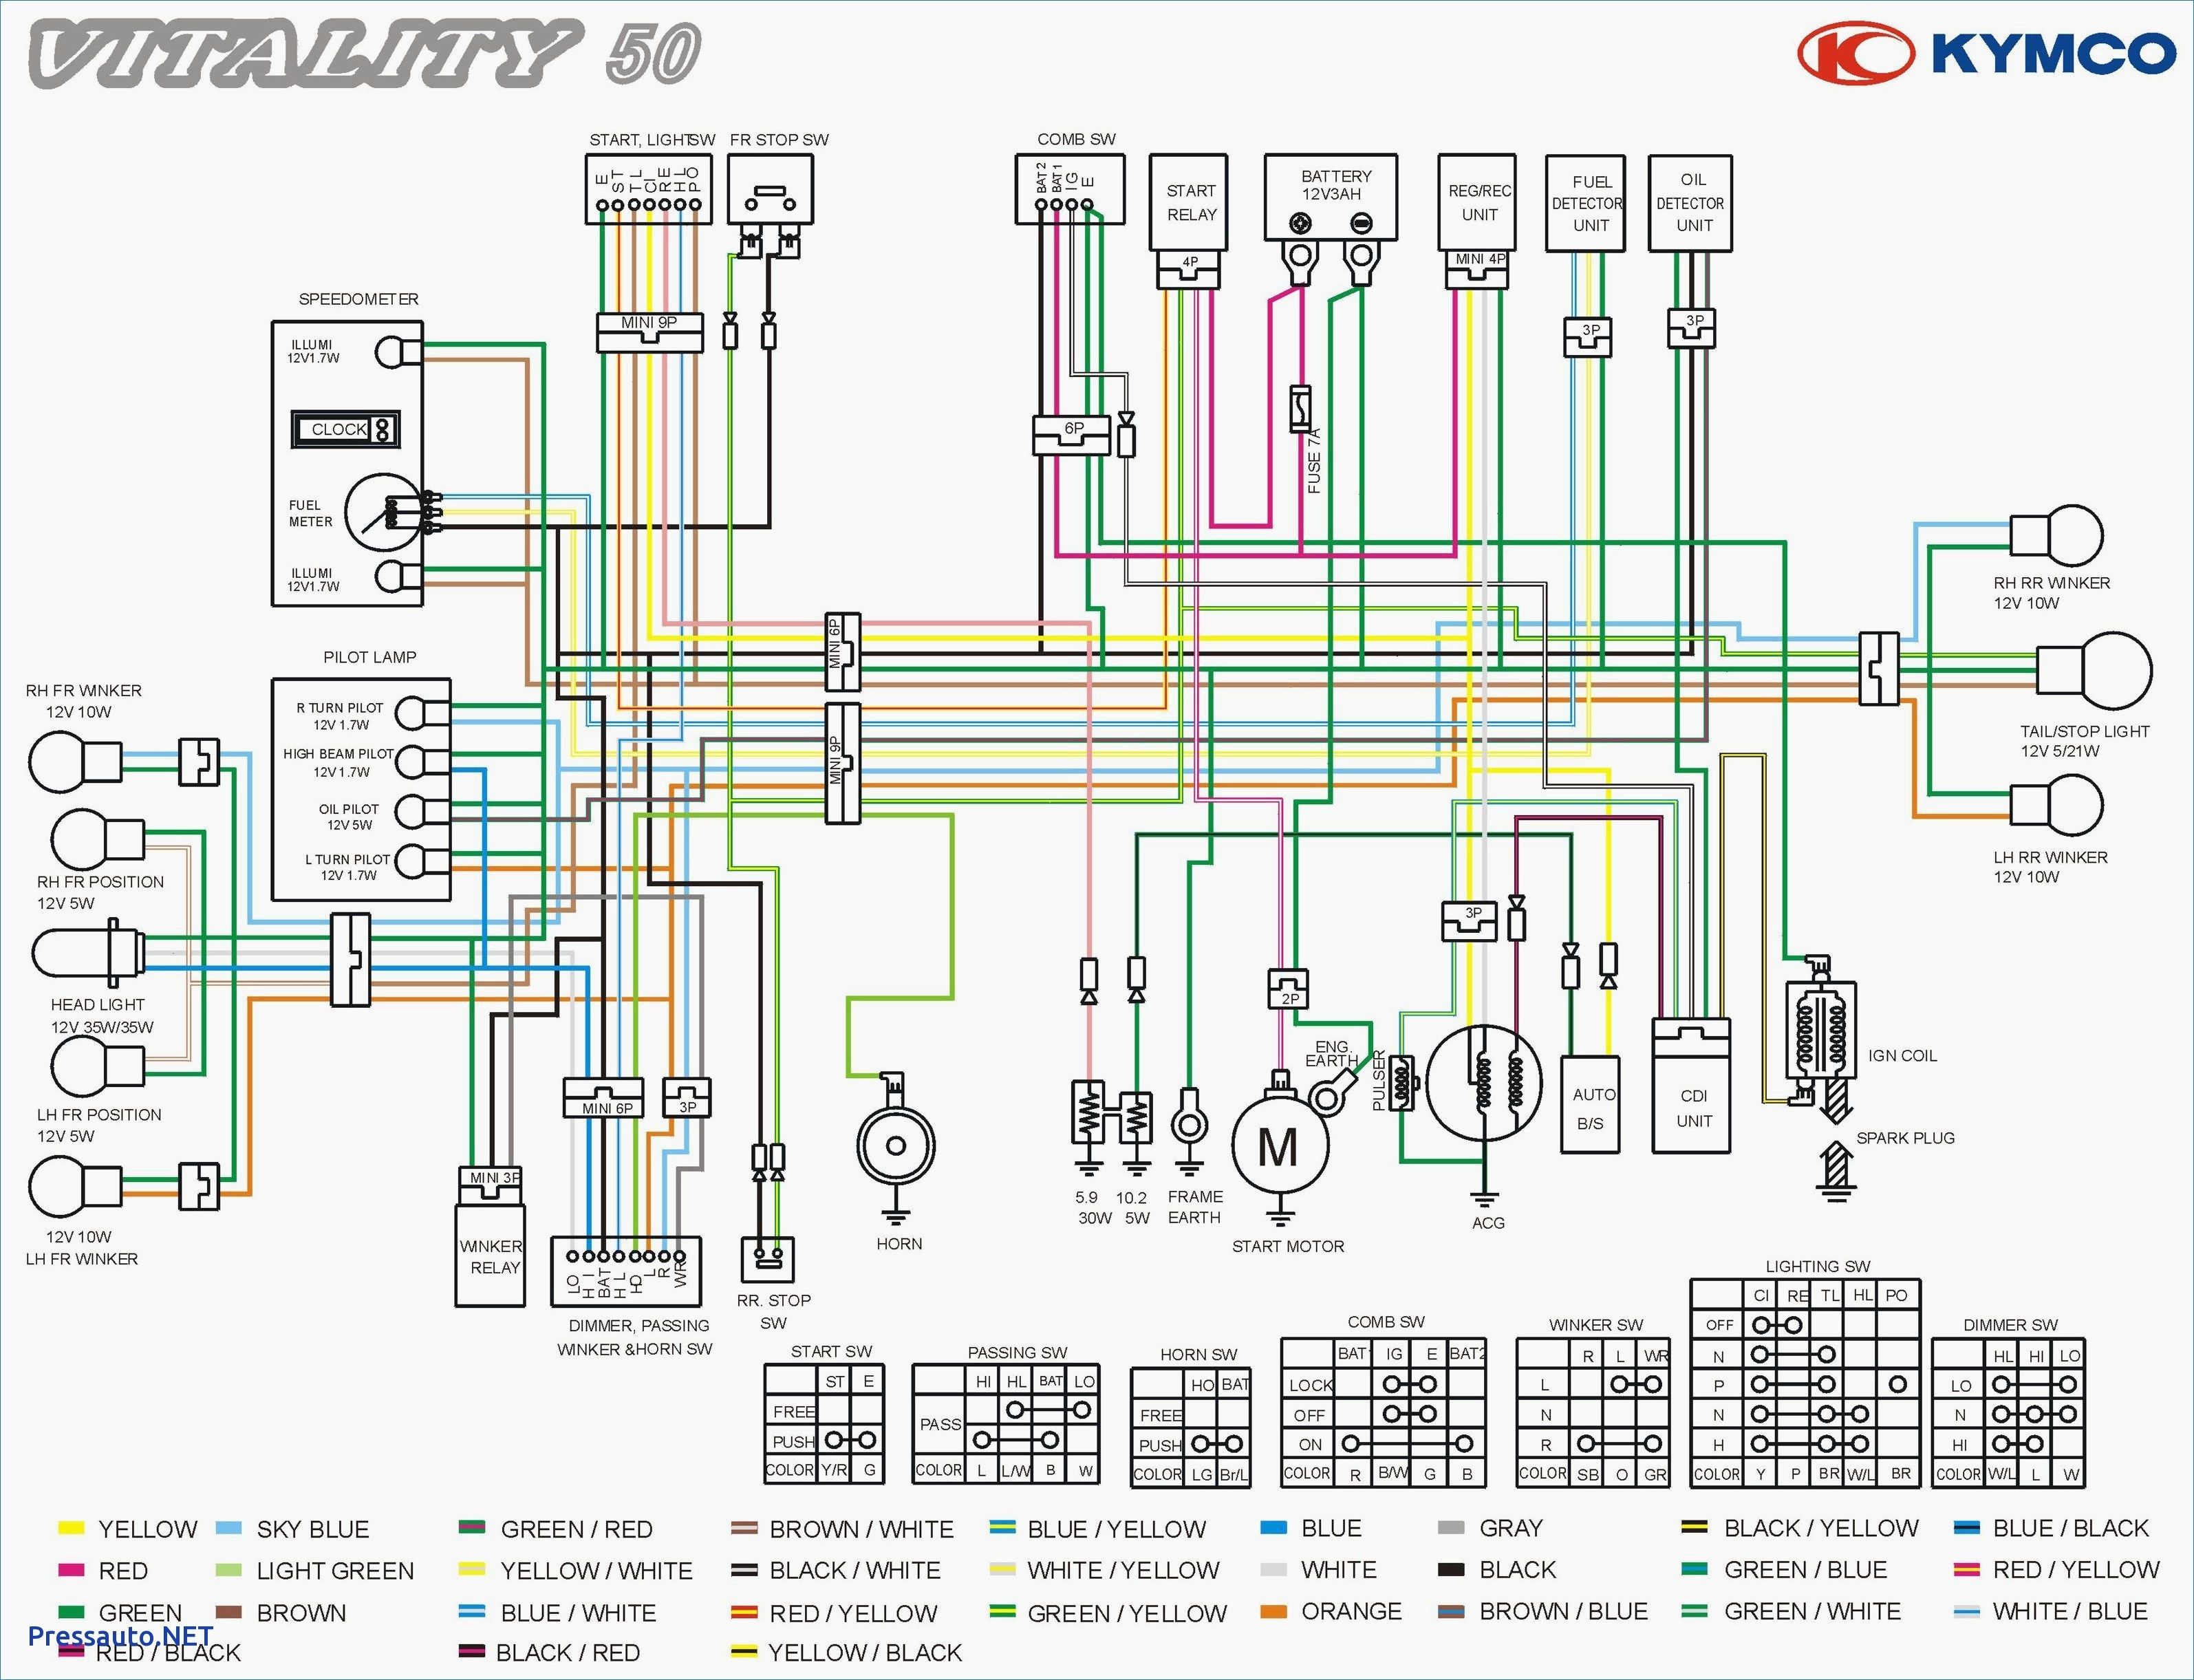 wiring diagram for kymco agility 50 download free and 50Cc Scooter Carburetor Diagram